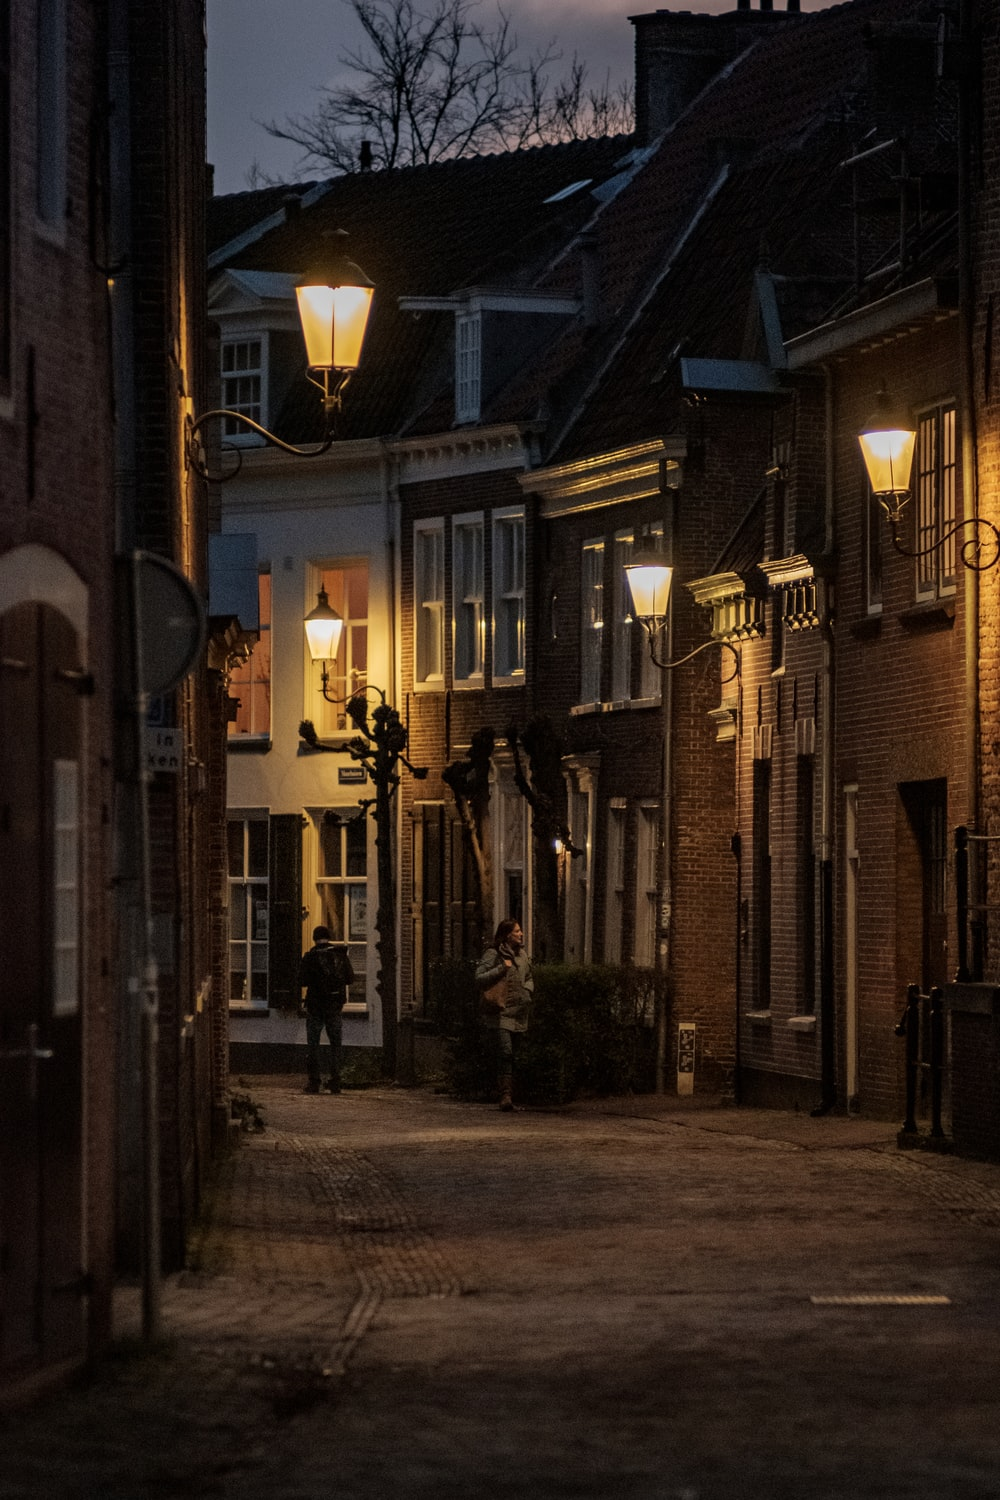 empty street with light posts between buildings during night time